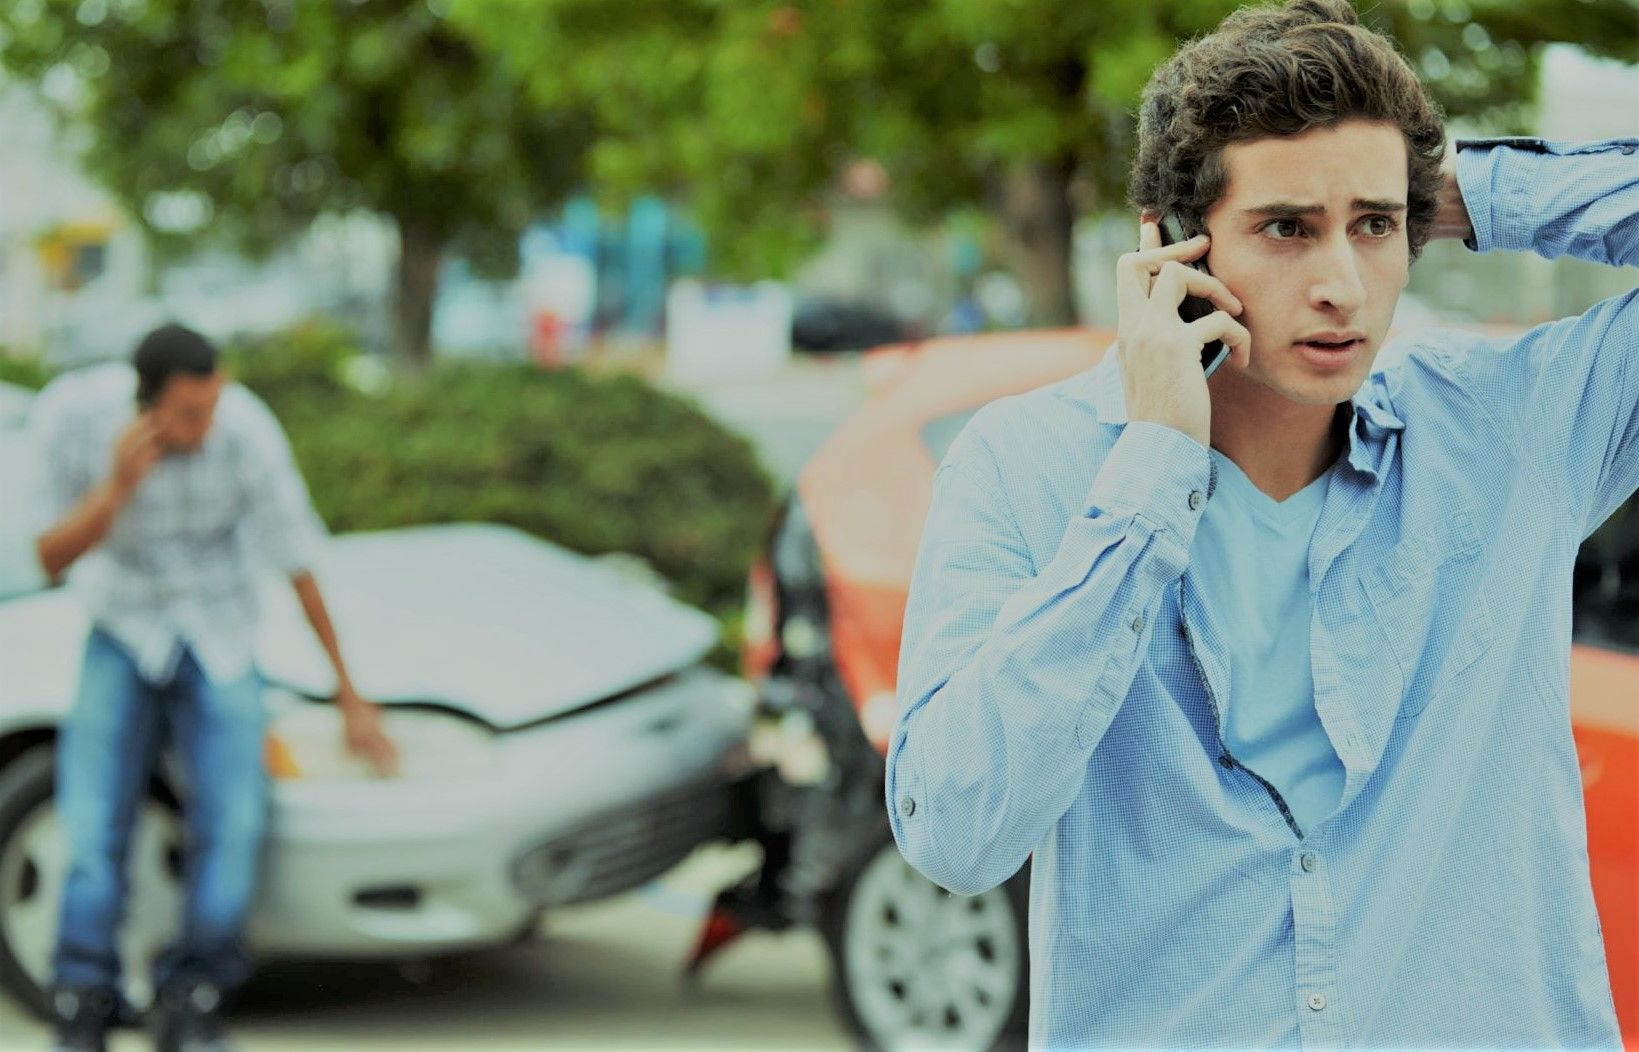 young man on cell phone at the scene of a car accident